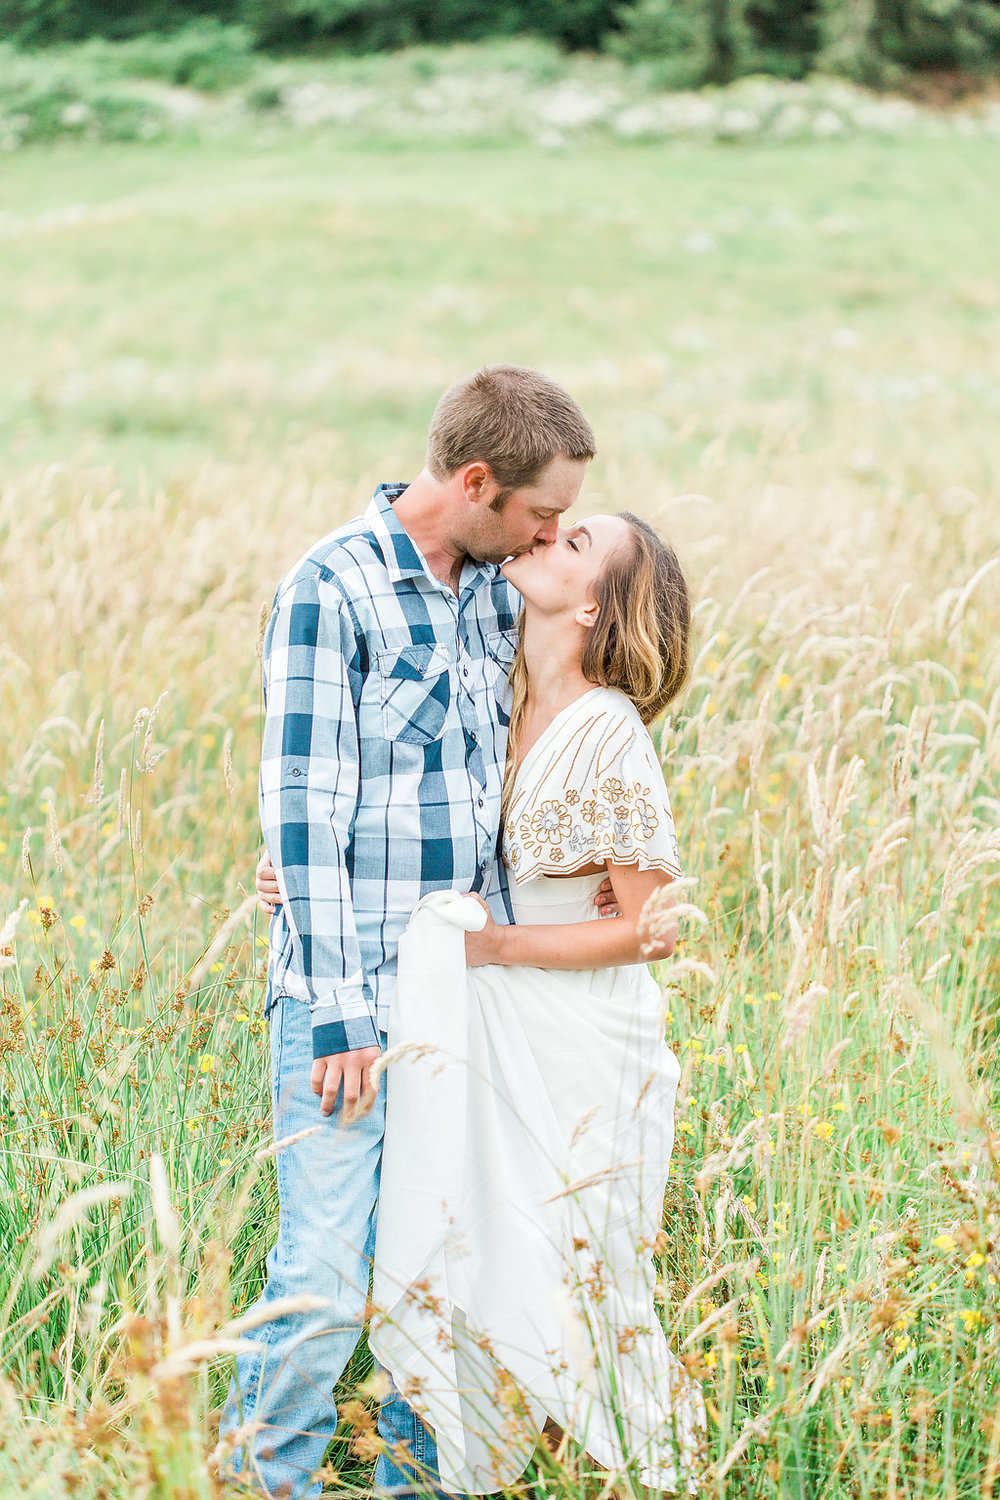 Beautiful outdoor engagement session | What to wear | Photo Inspiration | Engagement session | Portrait | White | Detail Shots | Mastin Labs | Engaged | Fuji 400 | Beautiful Couple | Couple in Love | Beautiful posing | Hair Piece for Photo Session | Engaged to be Married | Kiss in a Field